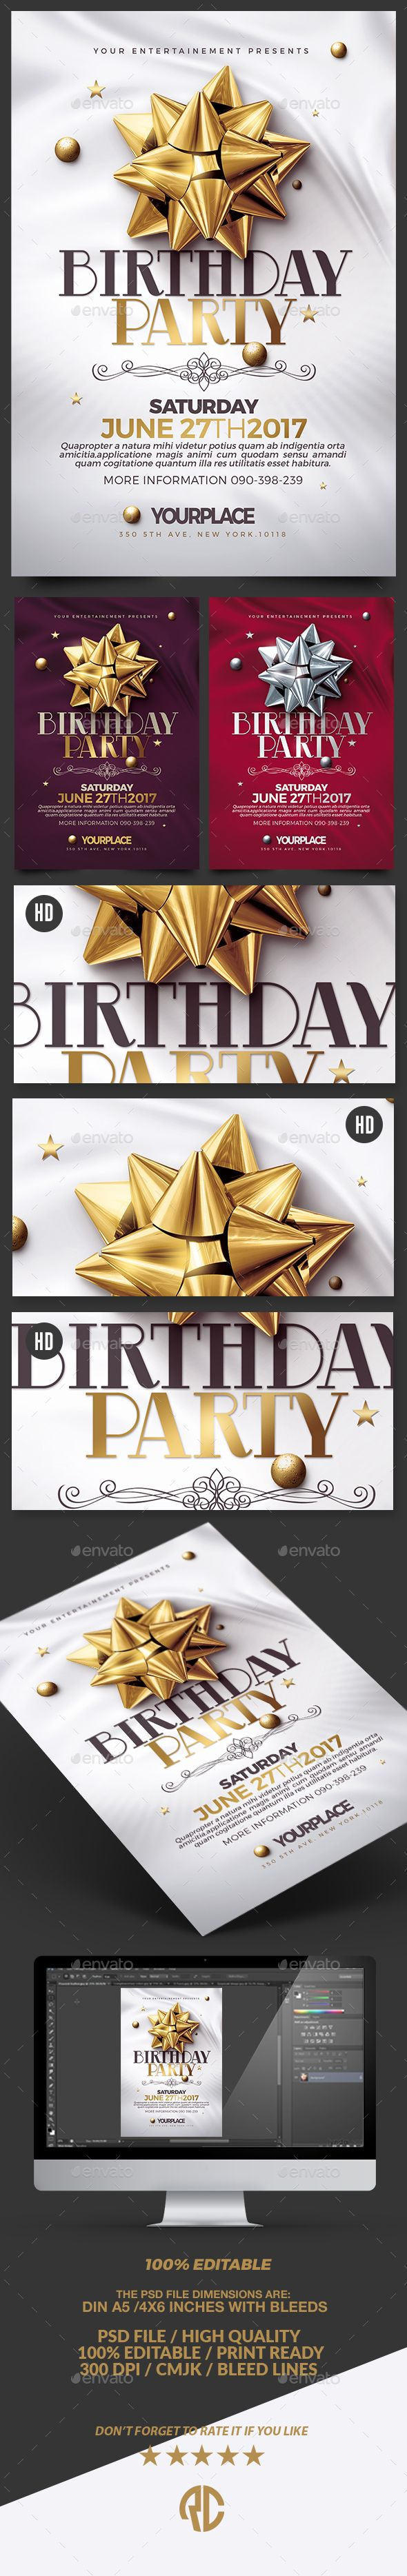 Birthday Party | 3 Psd Flyer Templates #club • Download ➝ https://graphicriver.net/item/birthday-party-3-psd-flyer-templates/17932183?ref=pxcr